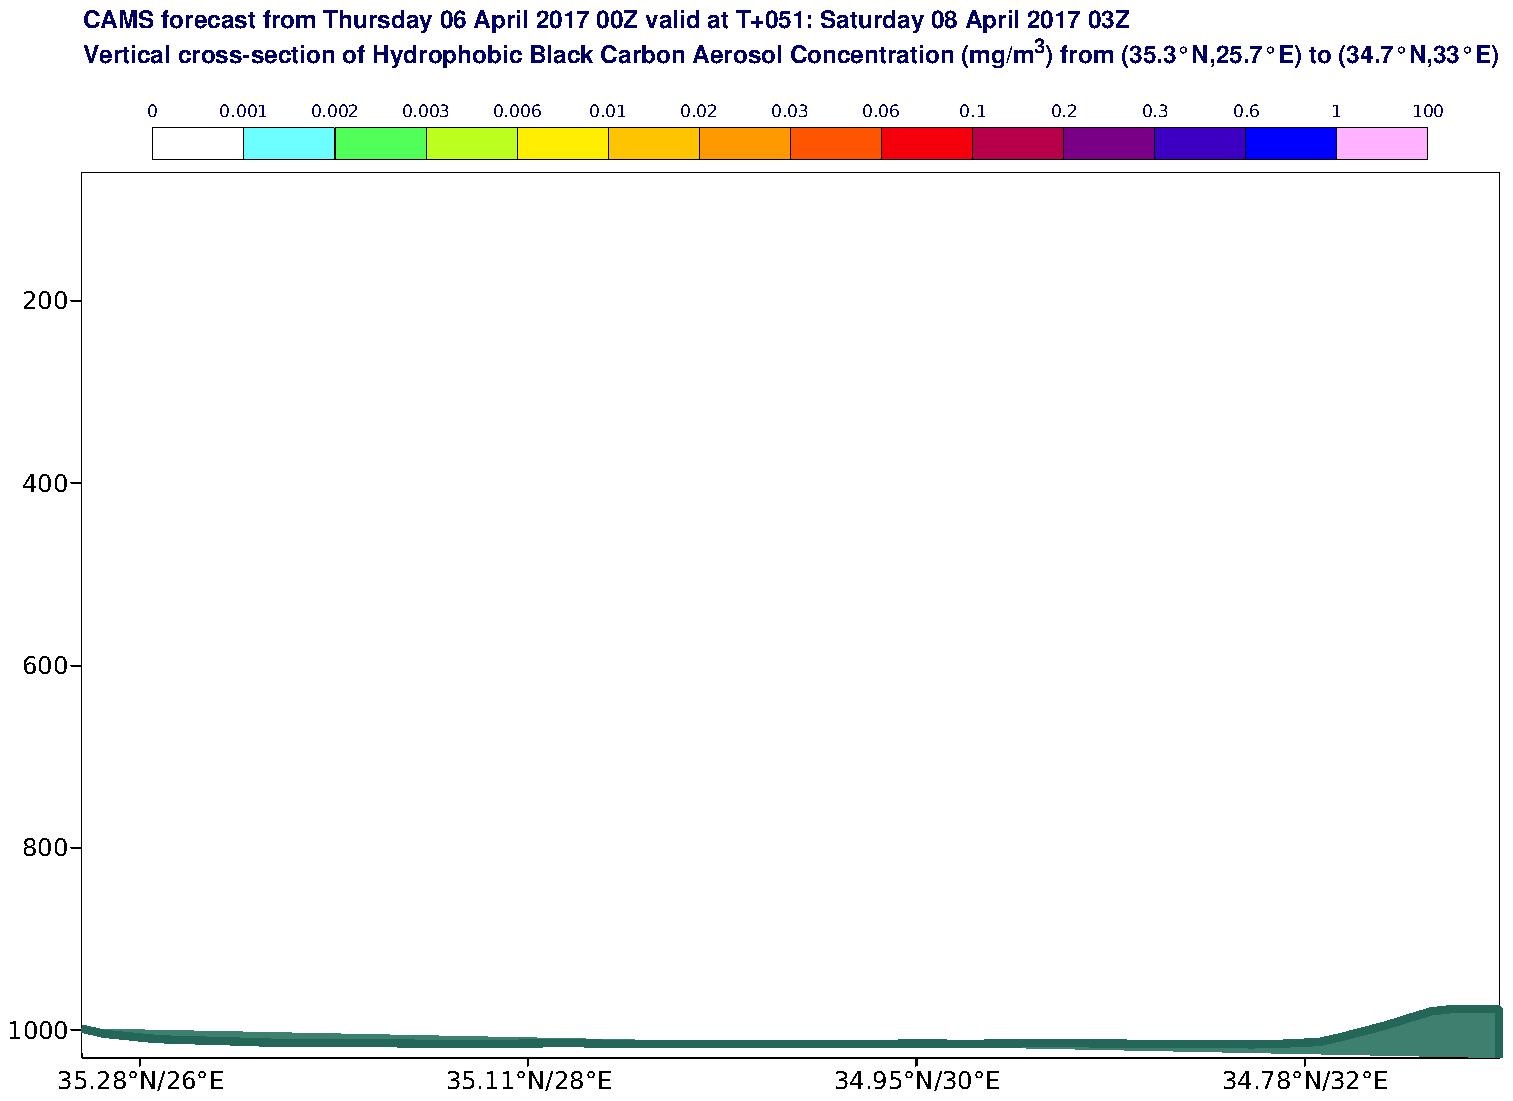 Vertical cross-section of Hydrophobic Black Carbon Aerosol Concentration (mg/m3) valid at T51 - 2017-04-08 03:00